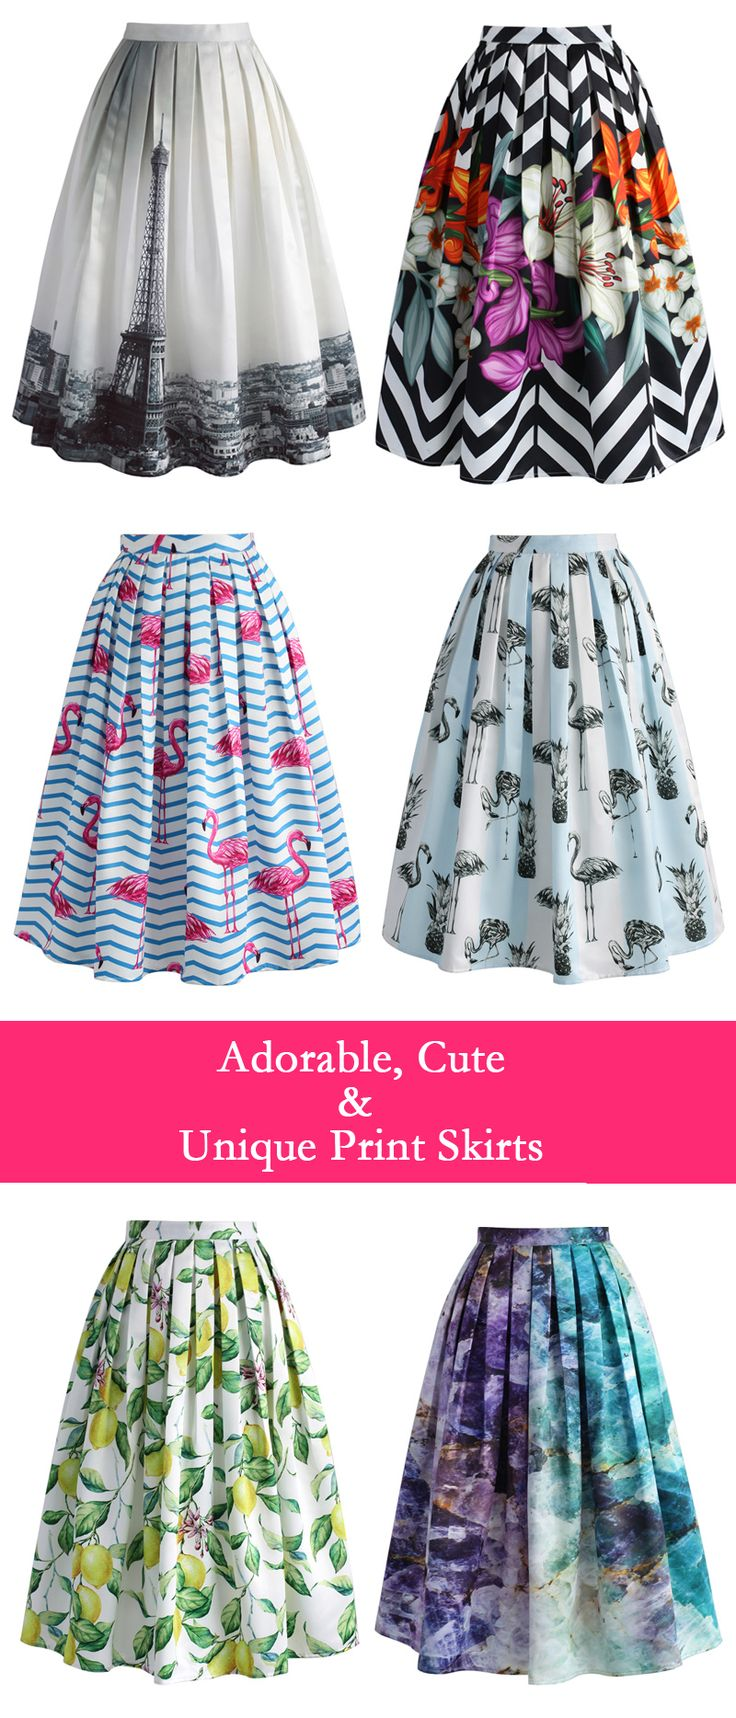 adorable cute and unique print skirts chicwish.com